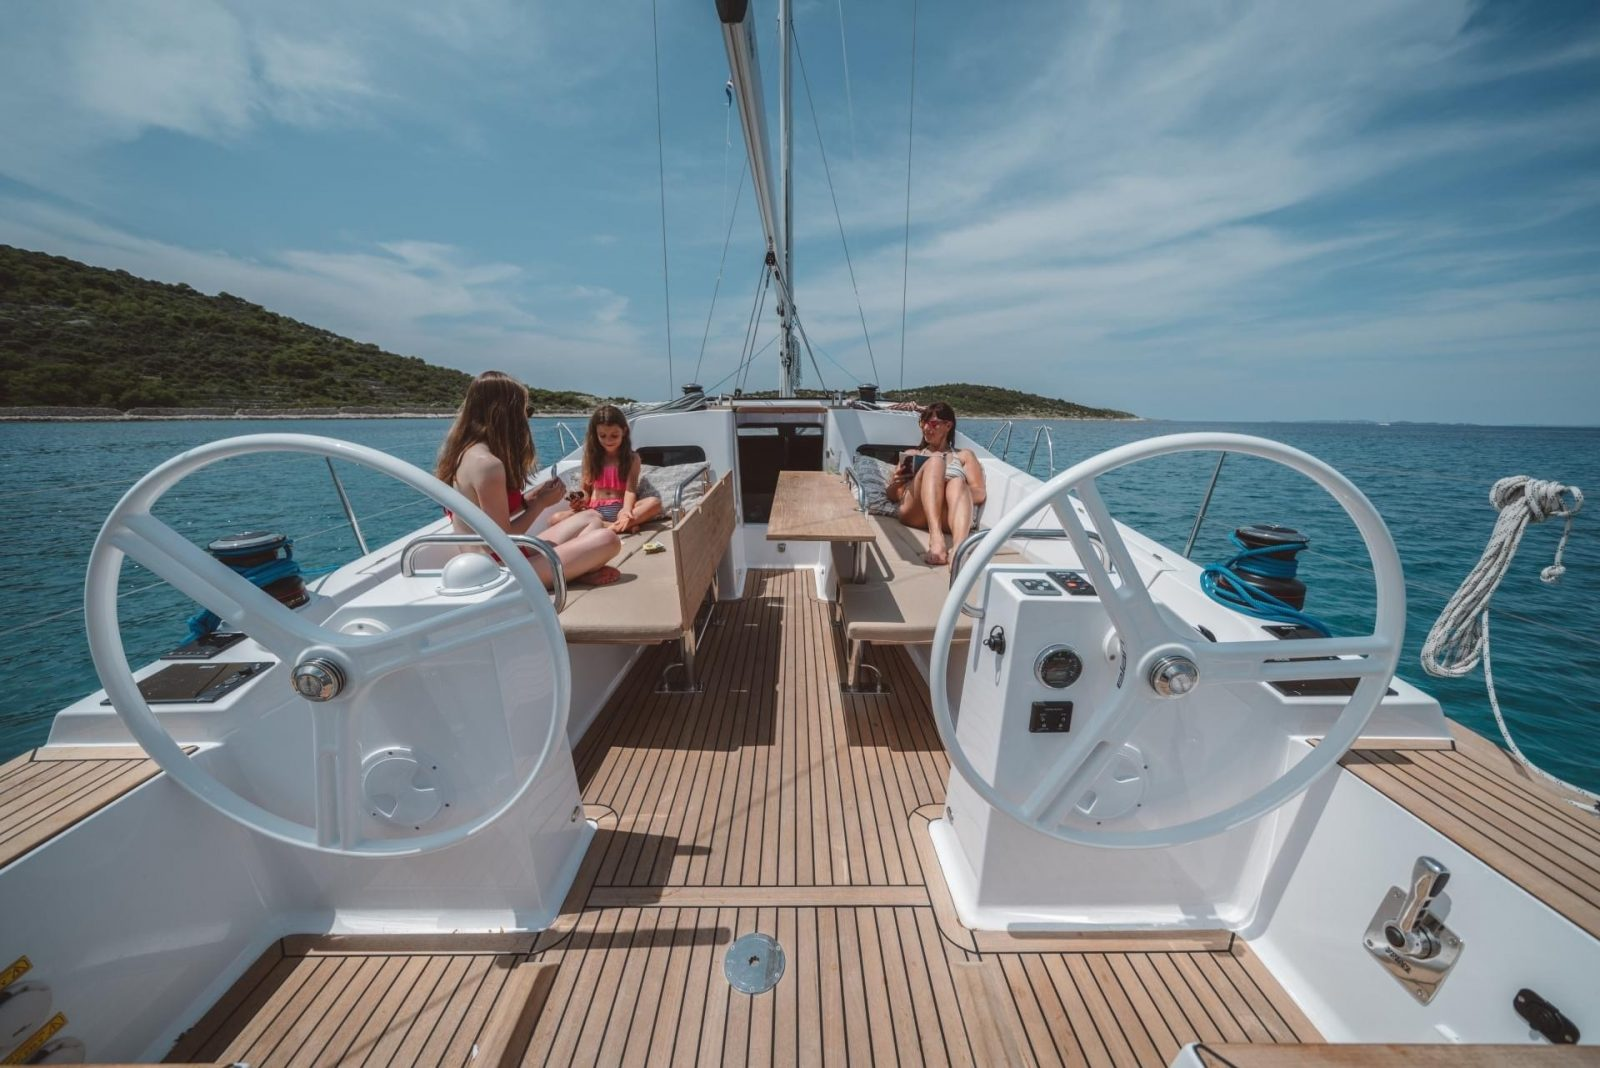 People relaxing in cockpit of a sailing yacht